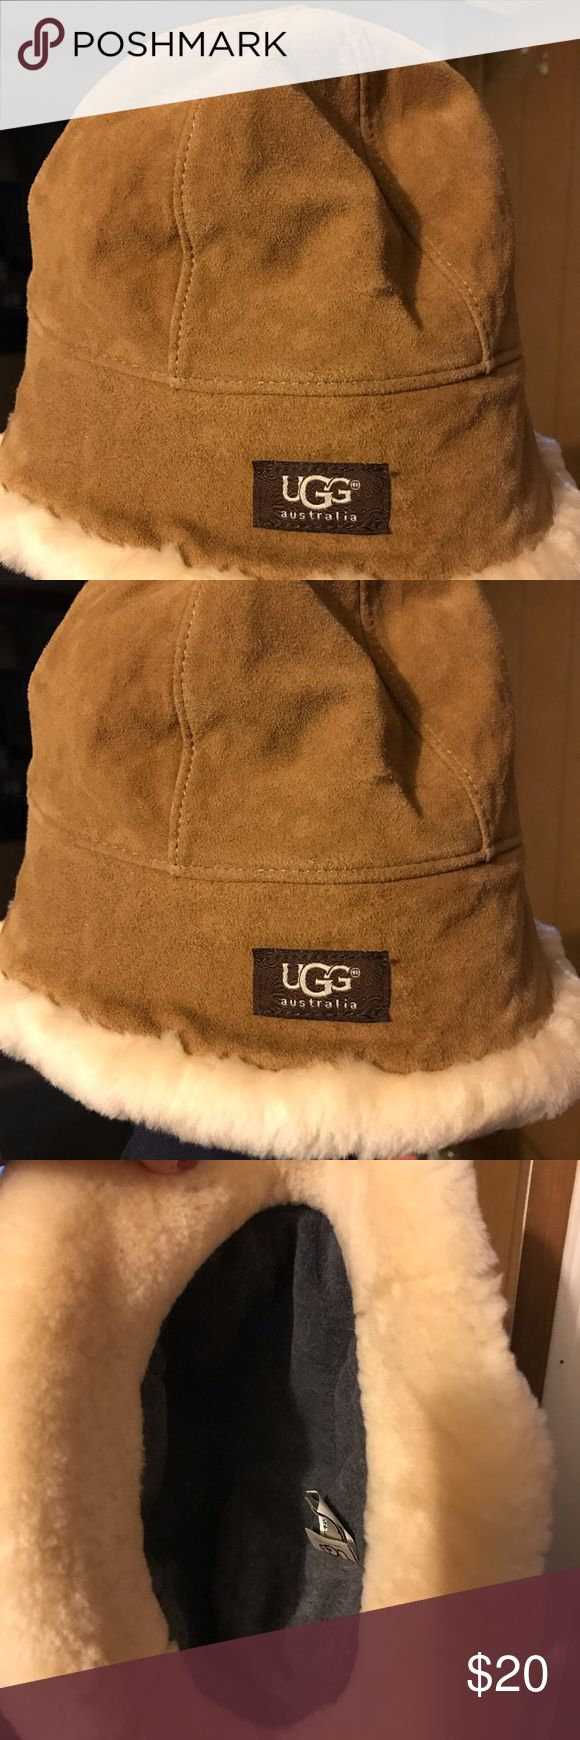 Ugg Australia genuine hat Super warm and soft. One size fits all. Love this hat but I get hot so quick and this is super warm. Just got it a few months ago. Paid I believe 60 for it. Bought it at the ugg store in mass. Smoke free home UGG Accessories Hats